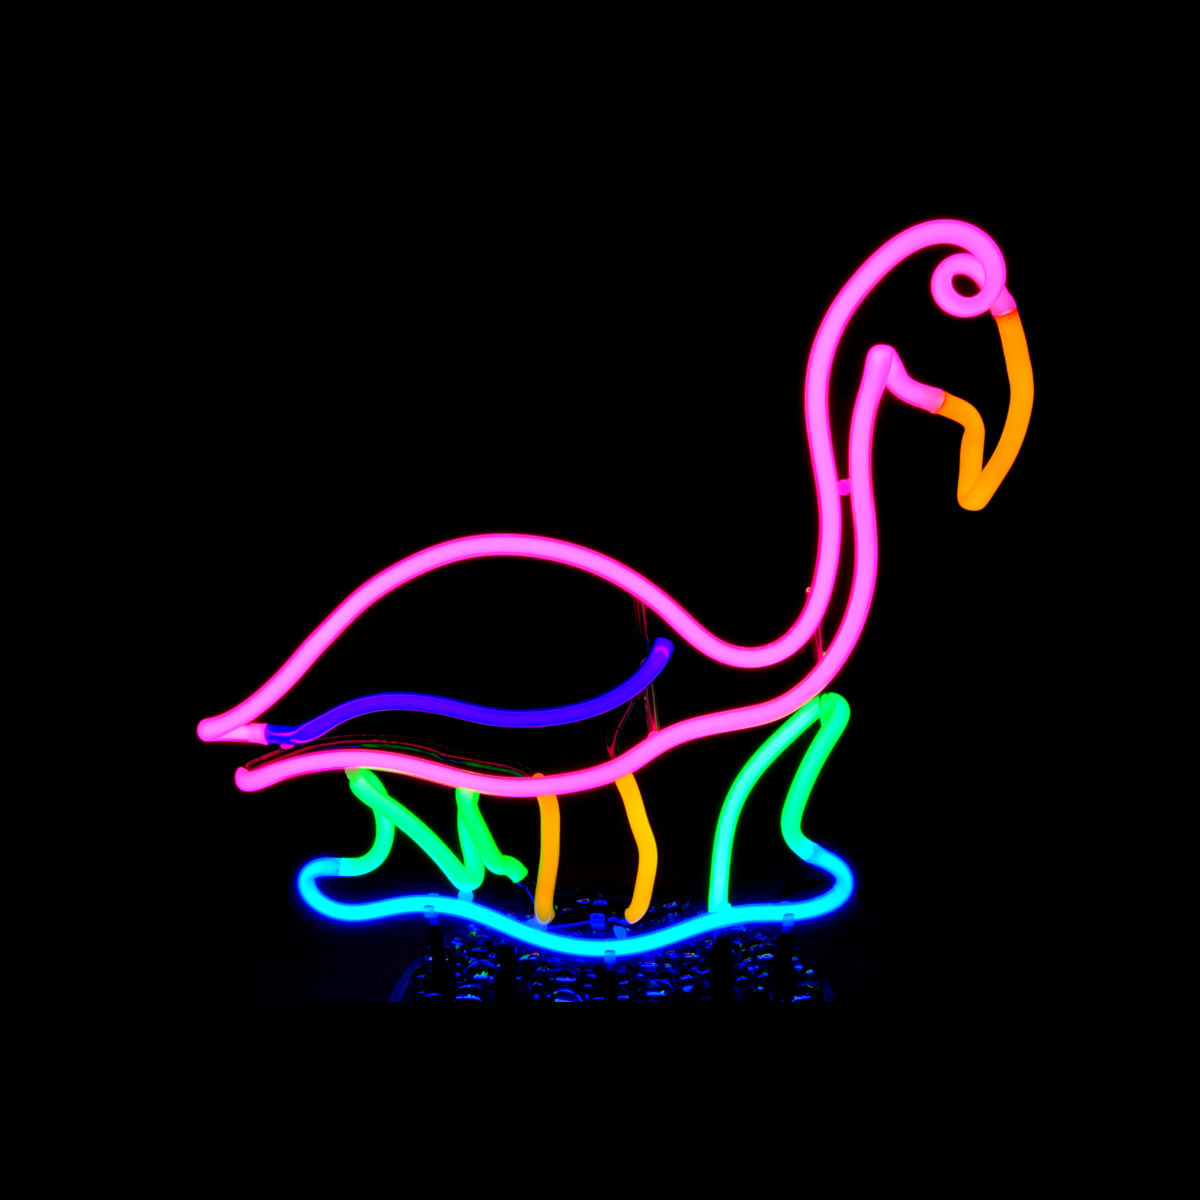 NEON PINK FLAMINGO ARTWORK by John Barton - BartonNeonMagic.com